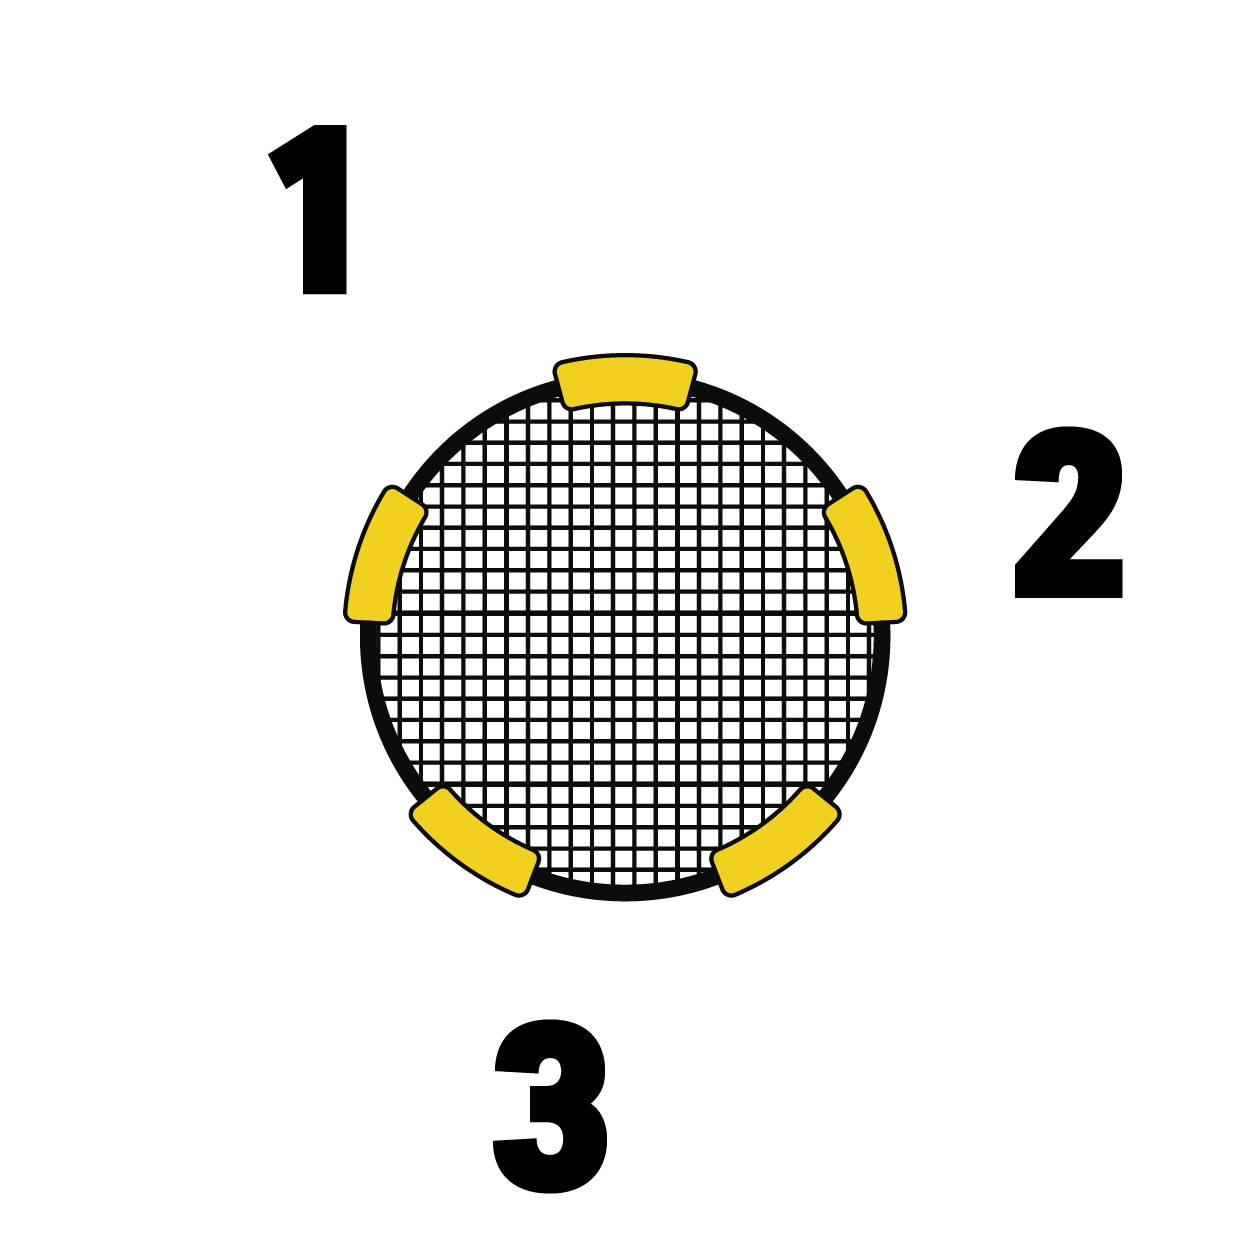 image regarding Hand and Foot Rules Printable named By yourself arrived in direction of the straight position Spikeball Retail outlet